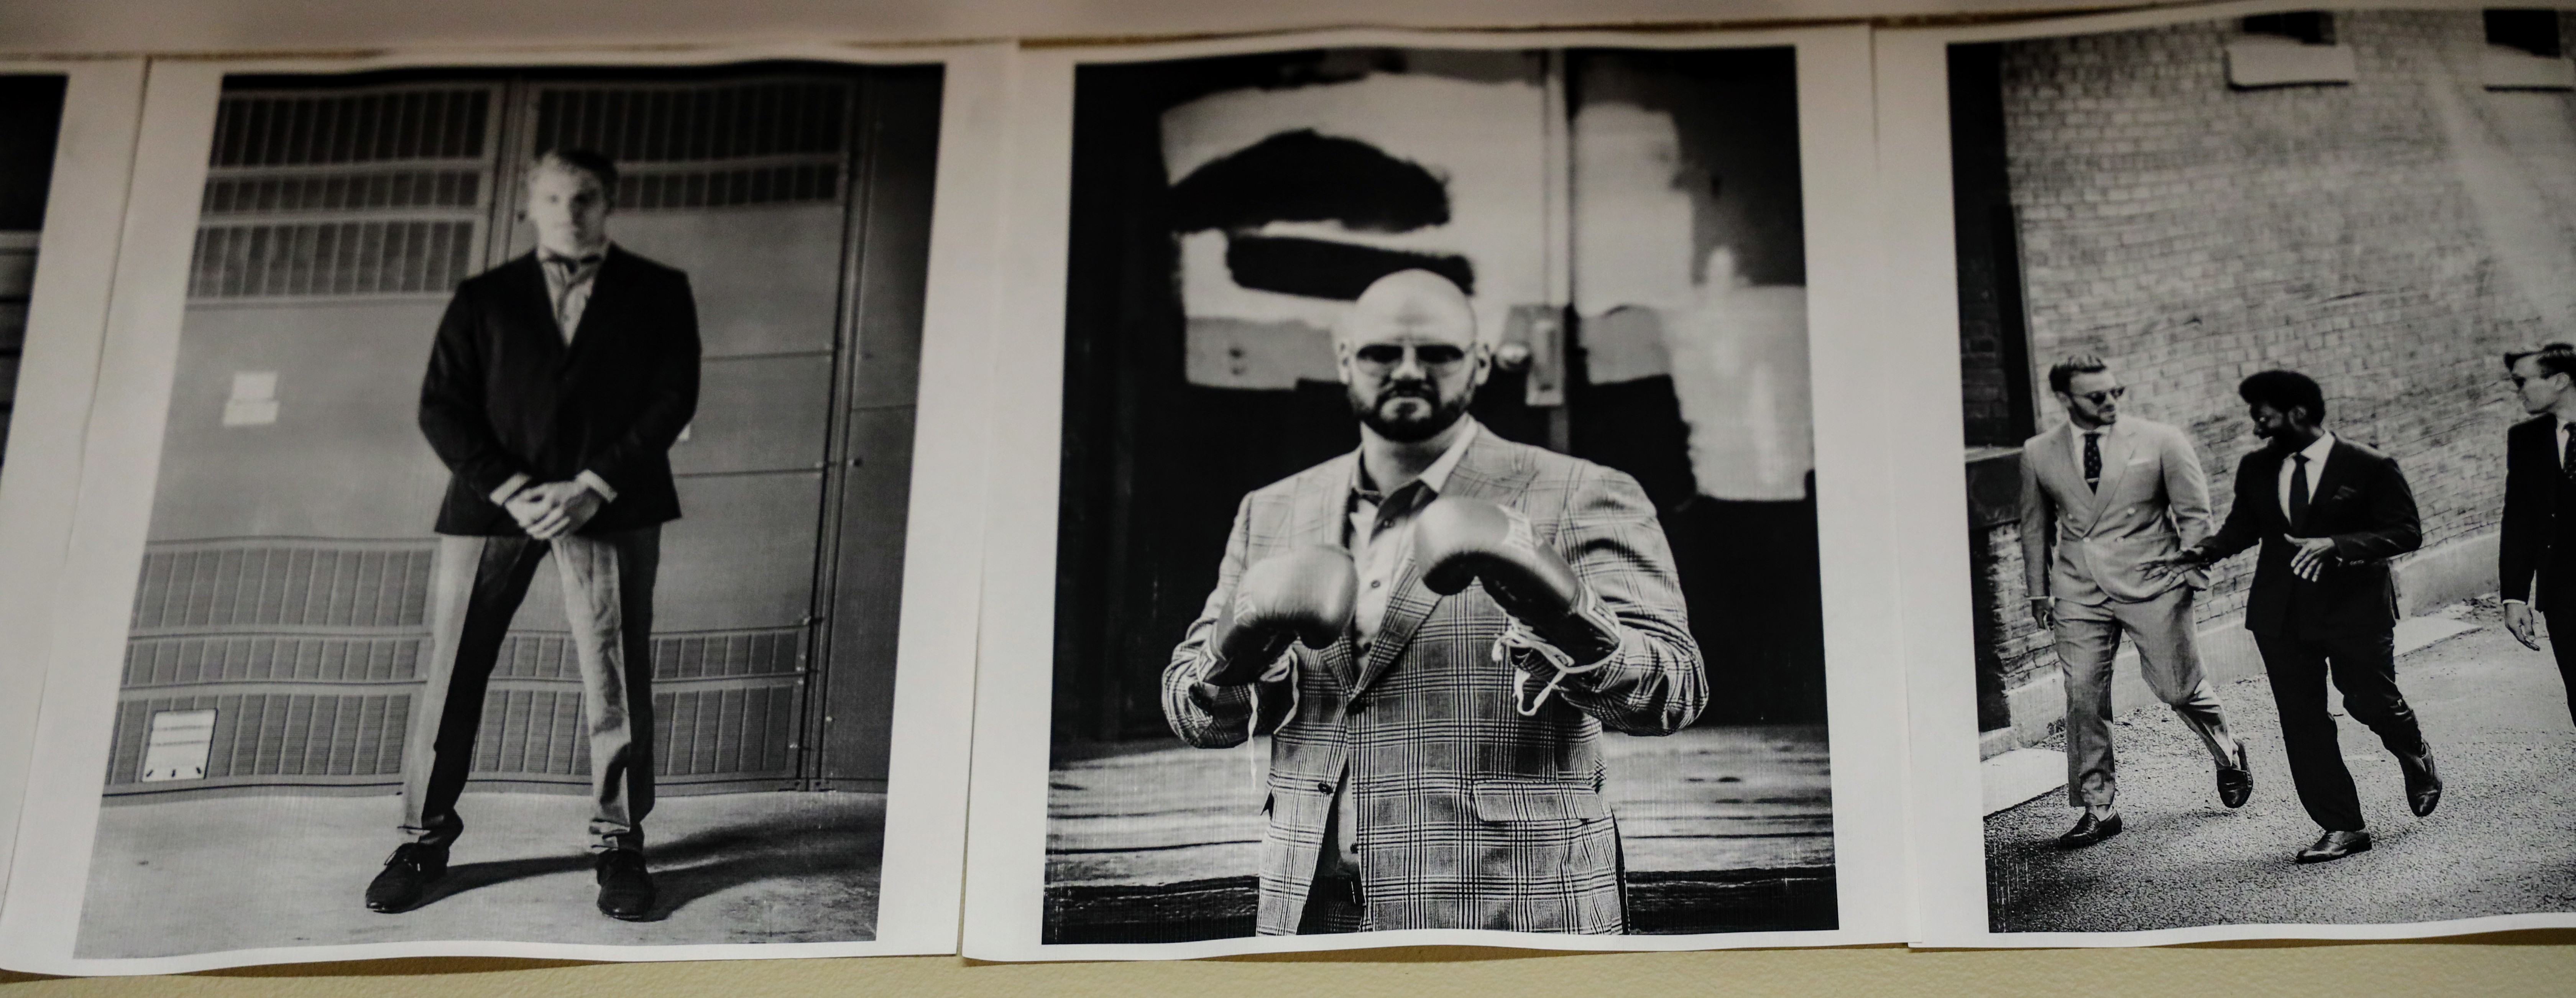 Black and white photos of some of his high-profile customers wearing his suits line the walls of Suits by Curtis Eliot.